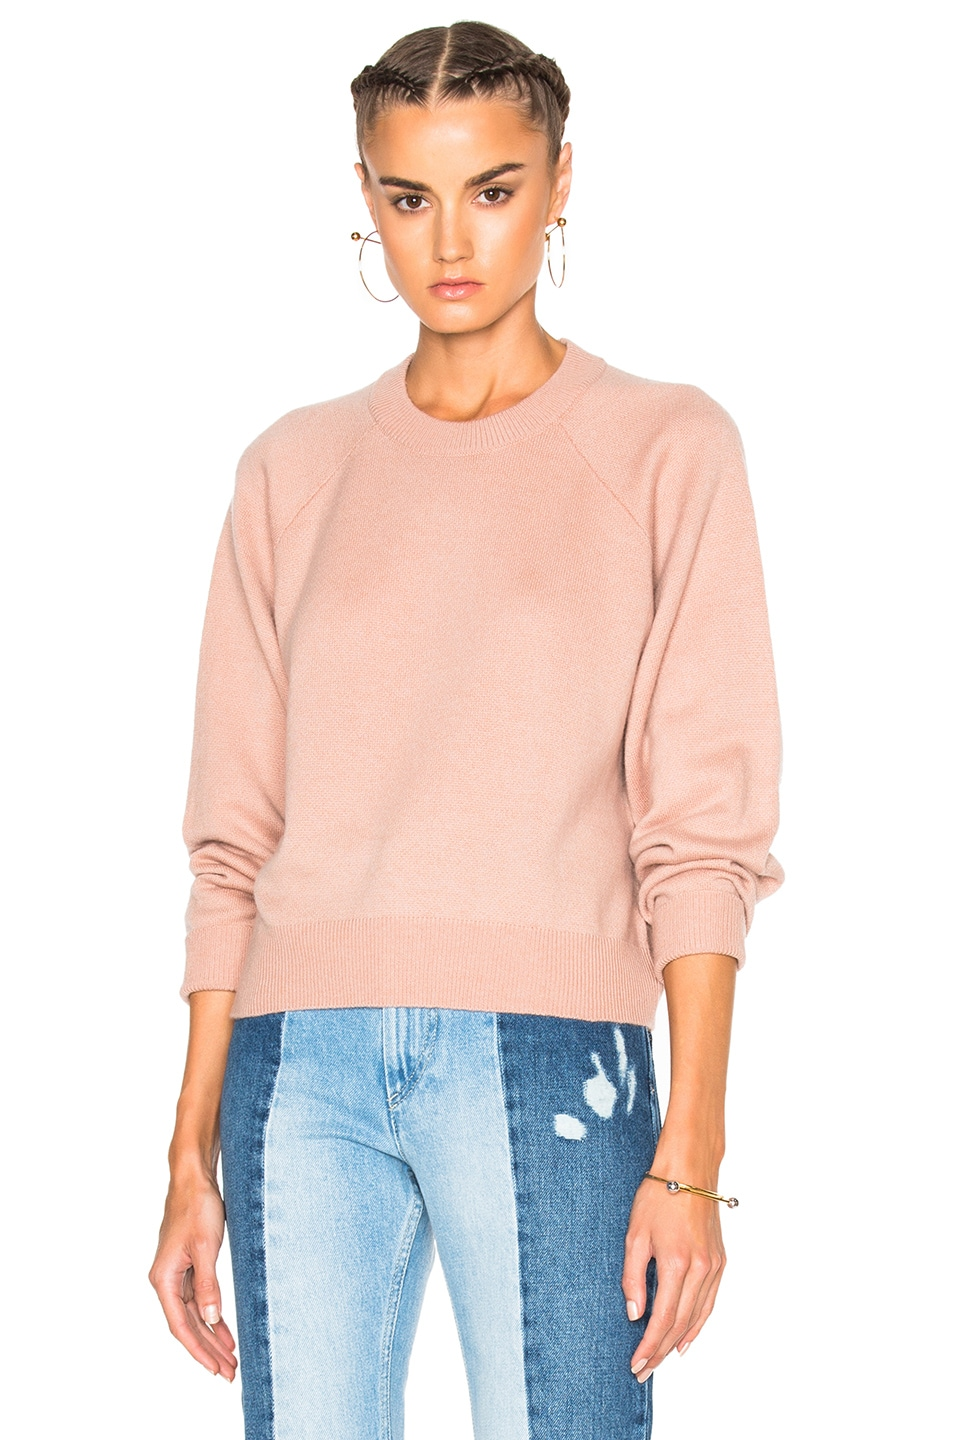 Image 1 of T by Alexander Wang Cashmere Crew Sweater in Peach